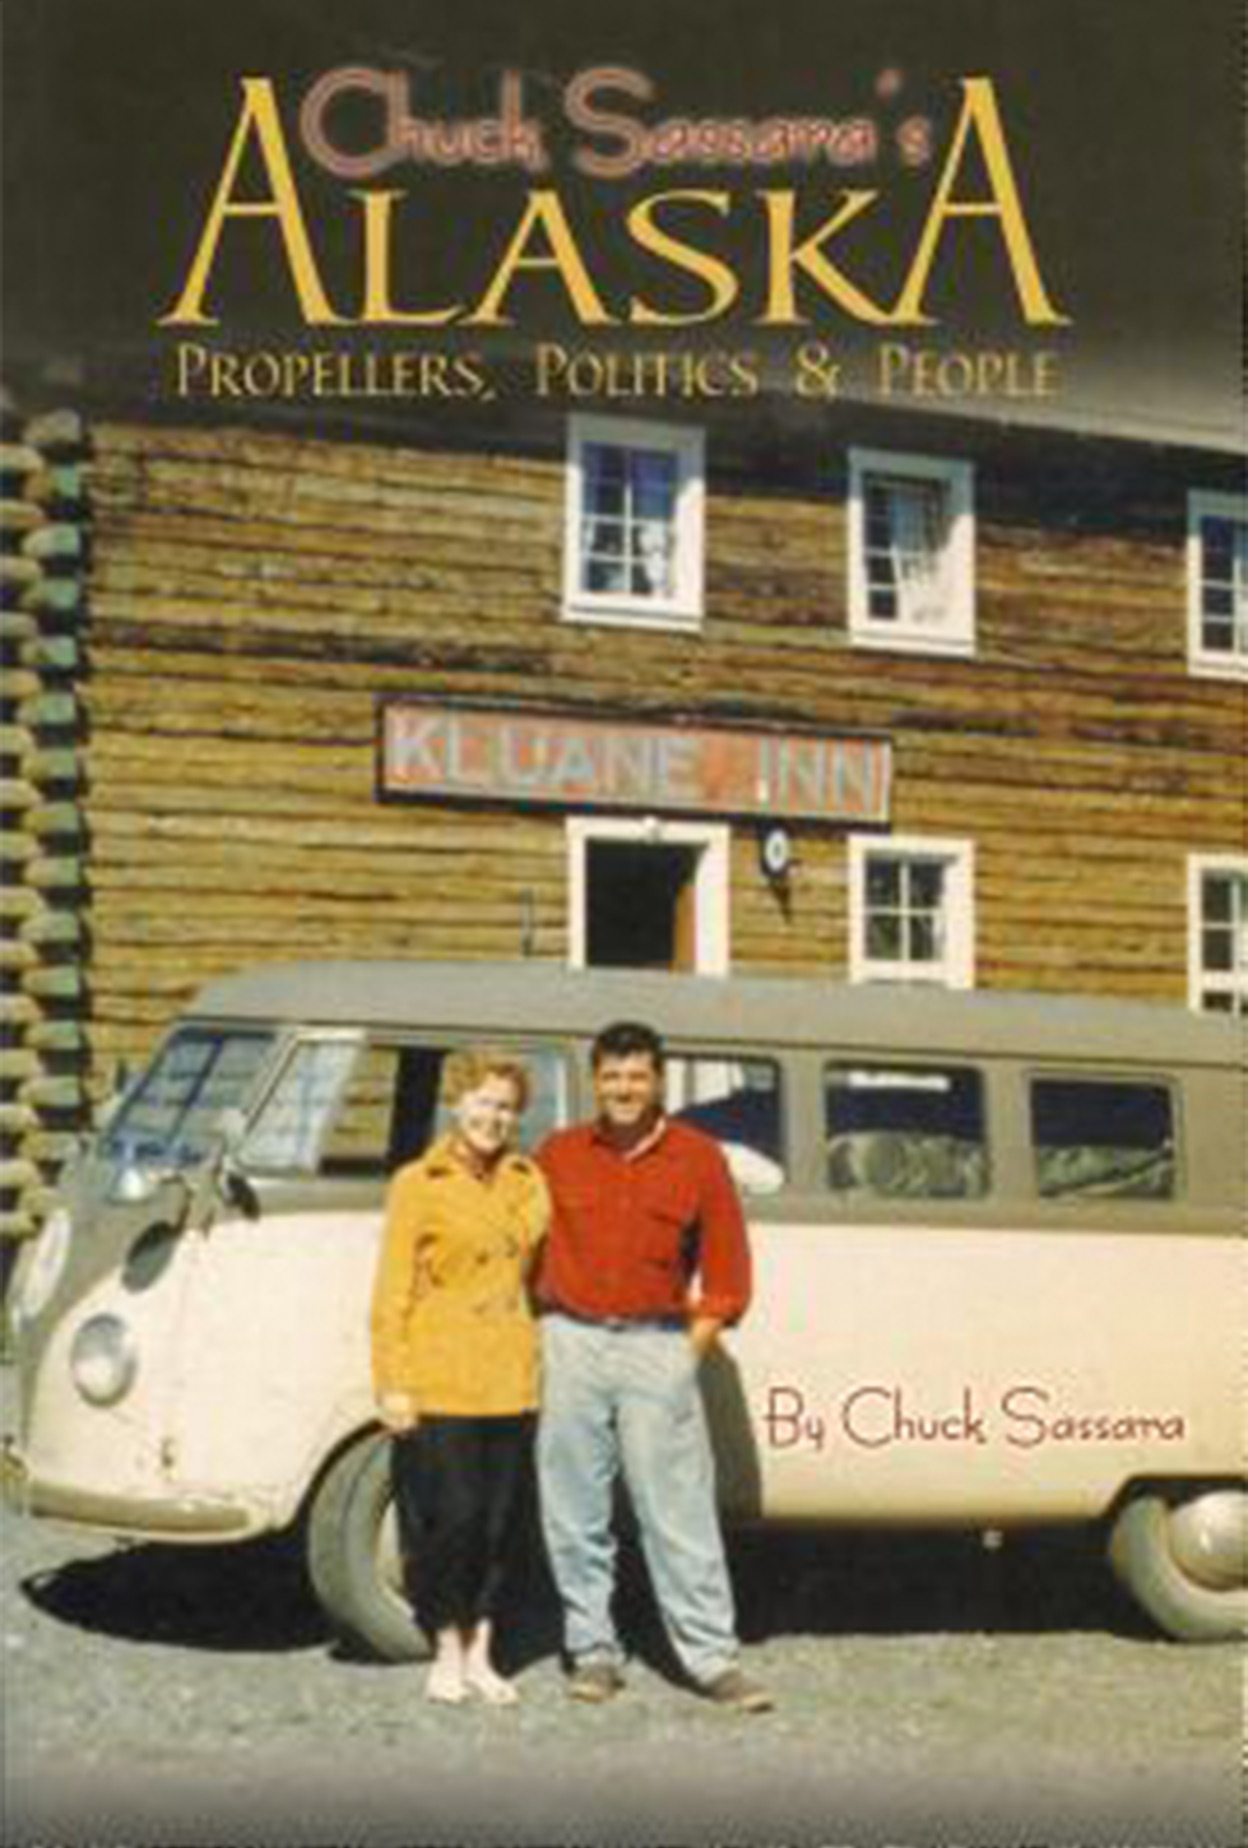 Book cover: Chuck Sassara's Alaska: Propellers, Politics & People